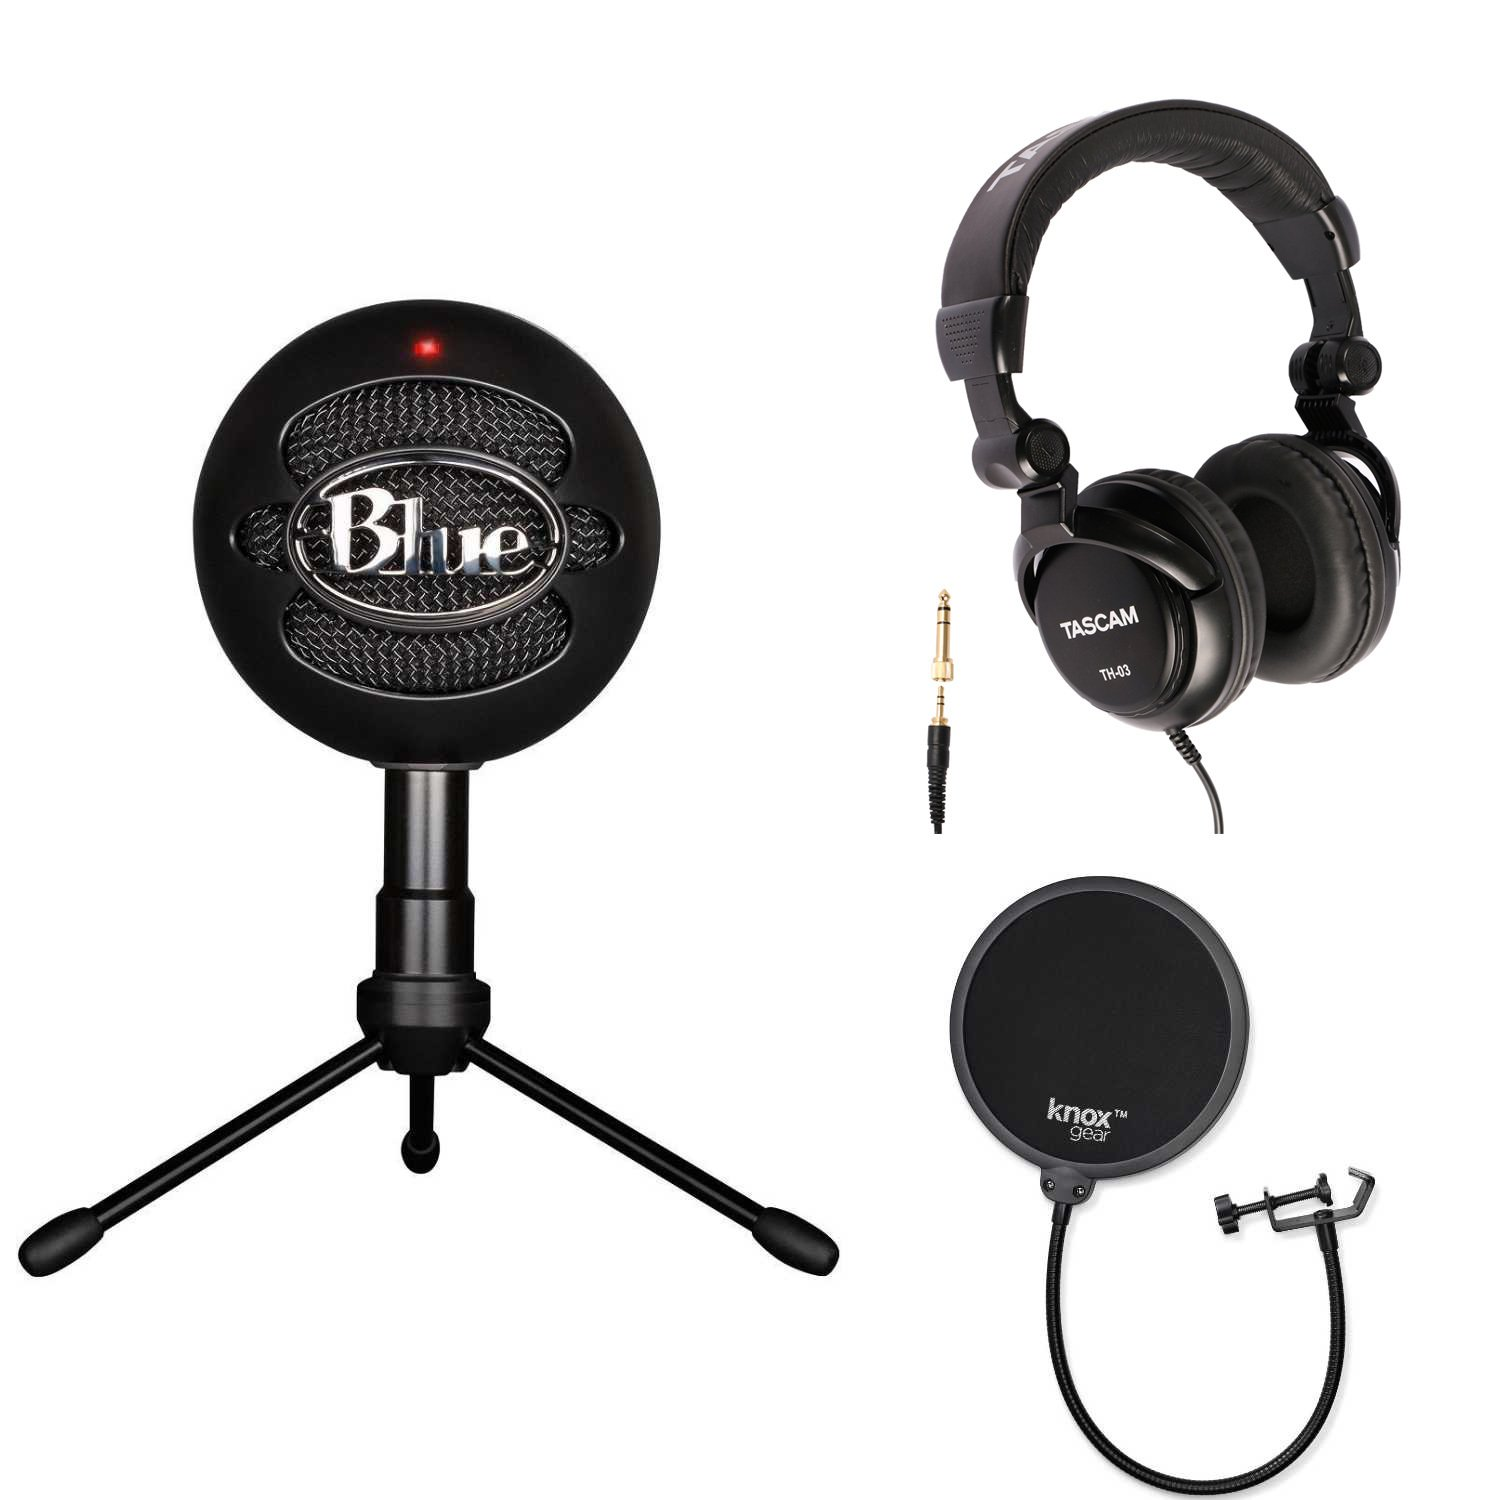 Blue Microphones Snowball iCE Condenser Microphone (Black) with Studio Headphones and Knox Pop Filter by Blue Microphones